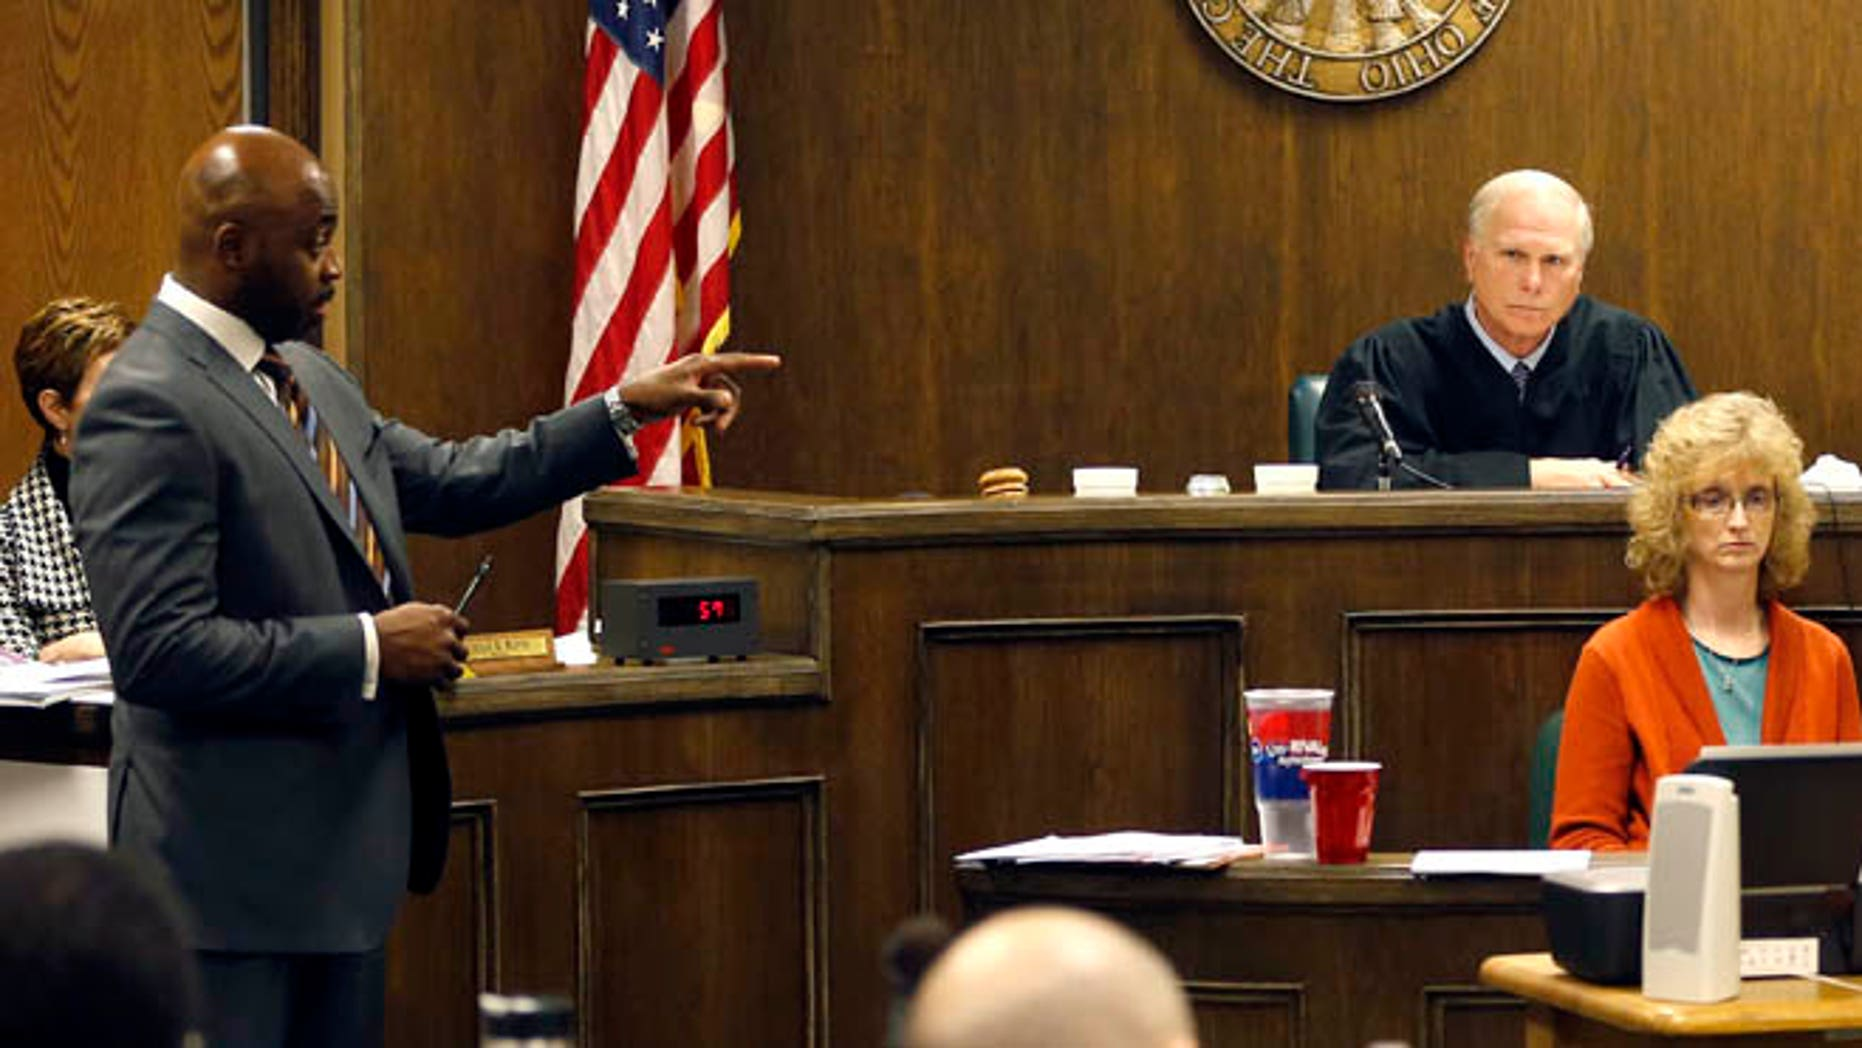 March 16, 2013: Defense attorney Walter Madison, left cross-examines states expert witness, forensic scientist Laureen Marinetta, right, as Judge Thomas Lipps, center, listens on the fourth day of the rape trial against a 17-year-old and 16-year-old in juvenile court in Steubenville, Ohio.